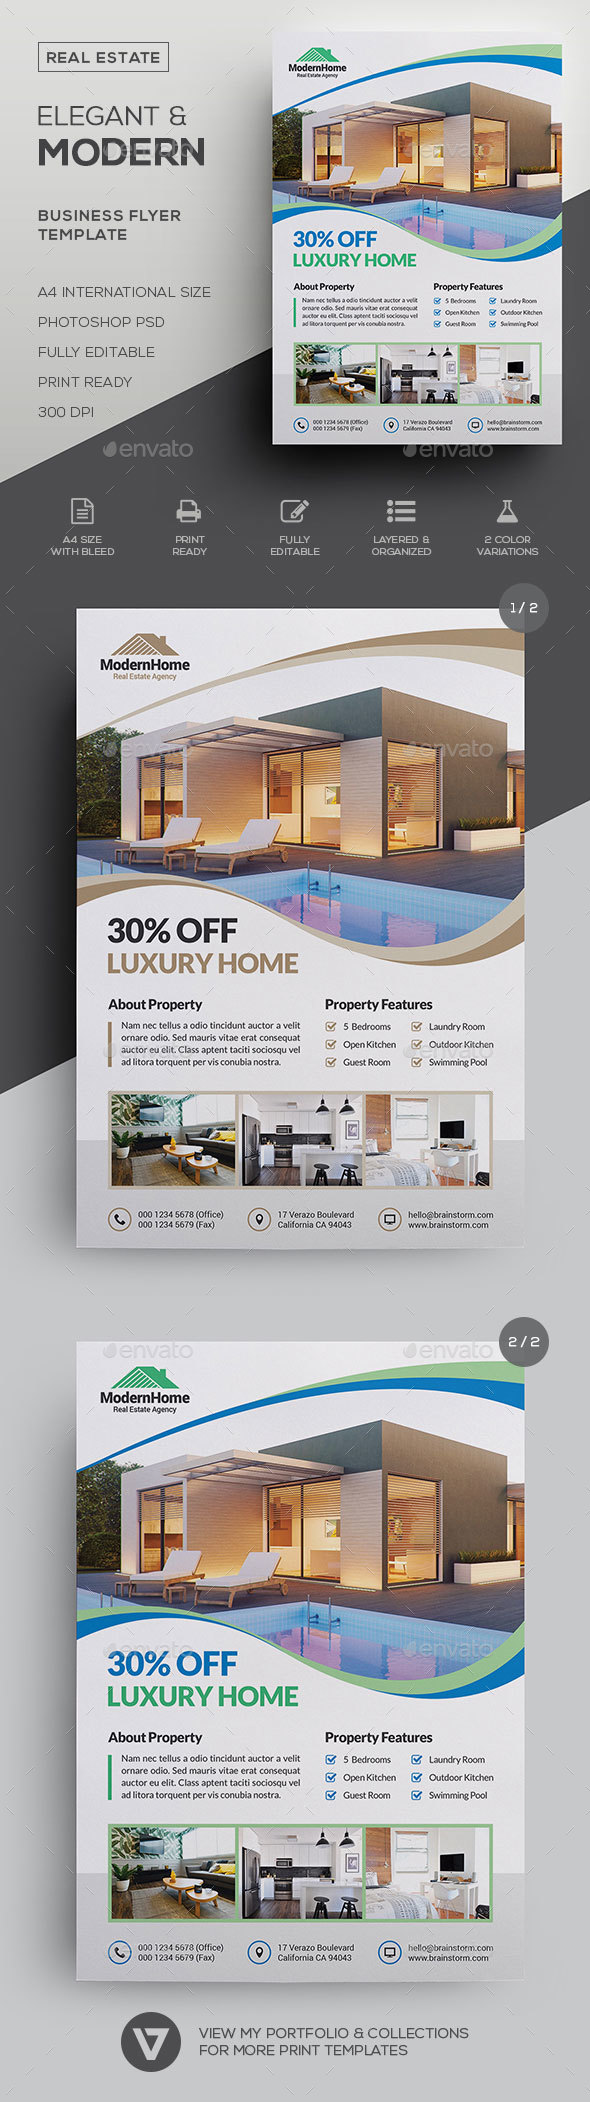 real estate feature sheet template